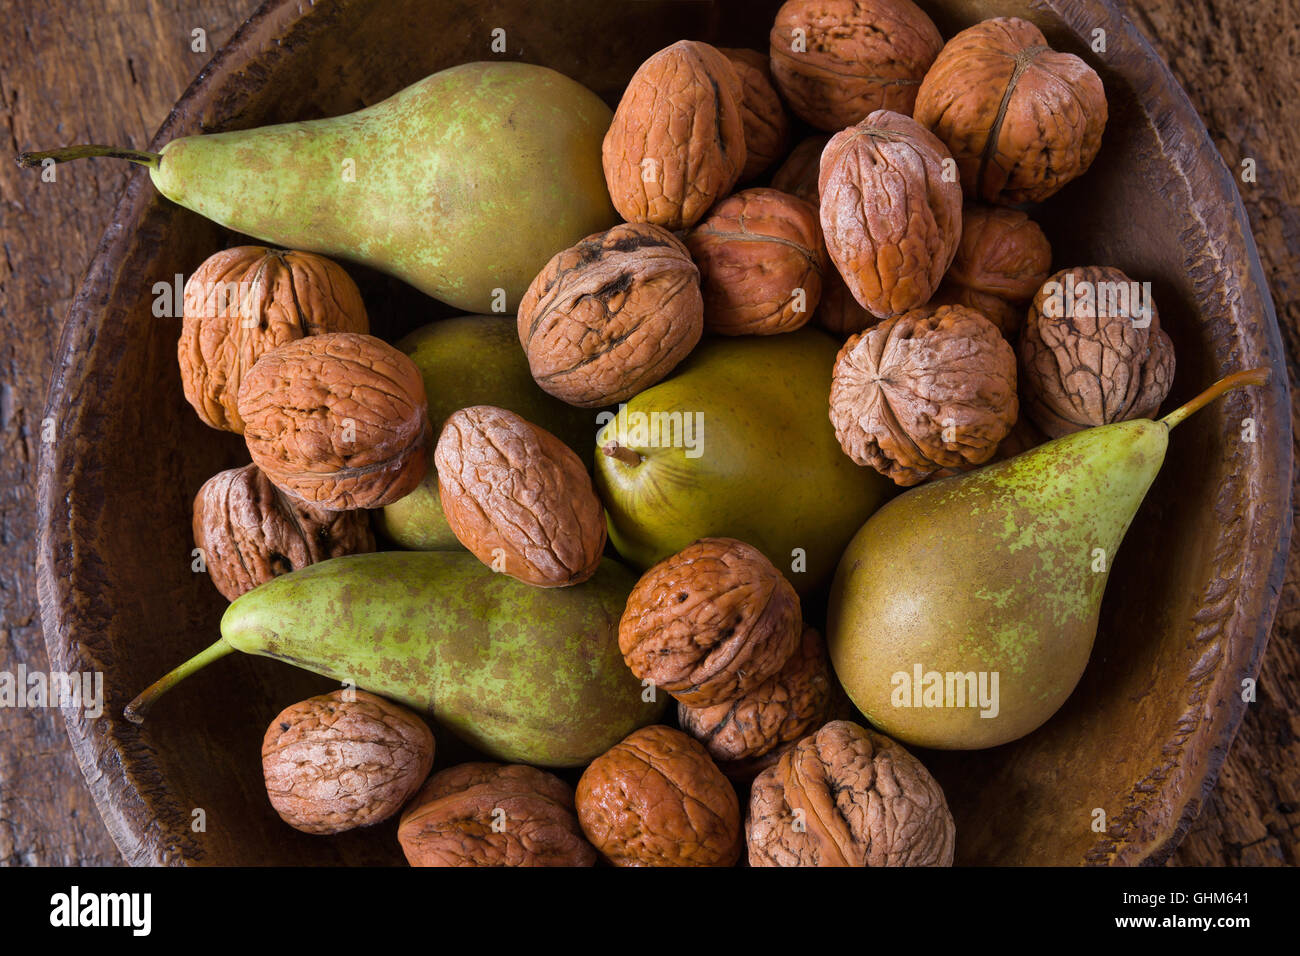 Autumn still life of fall leaves and walnuts on a grunge wooden background Stock Photo